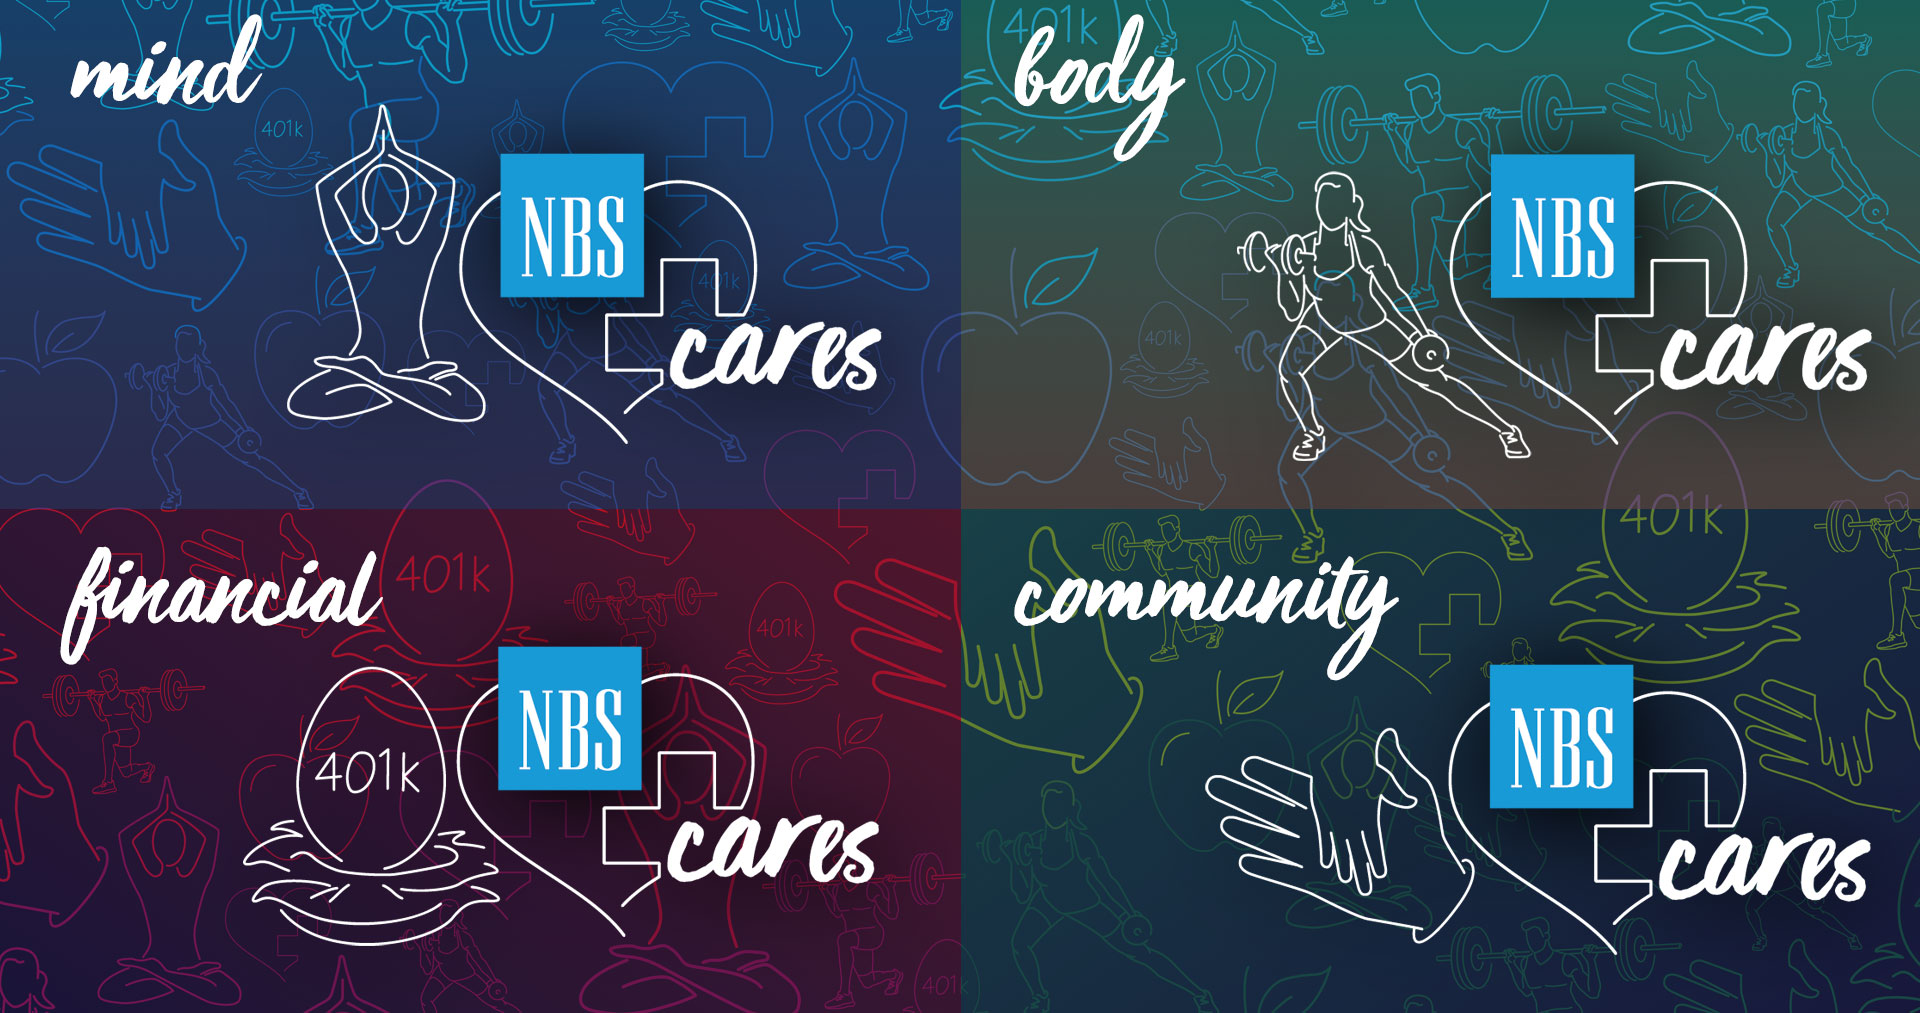 NBS-Cares-Themes_1920